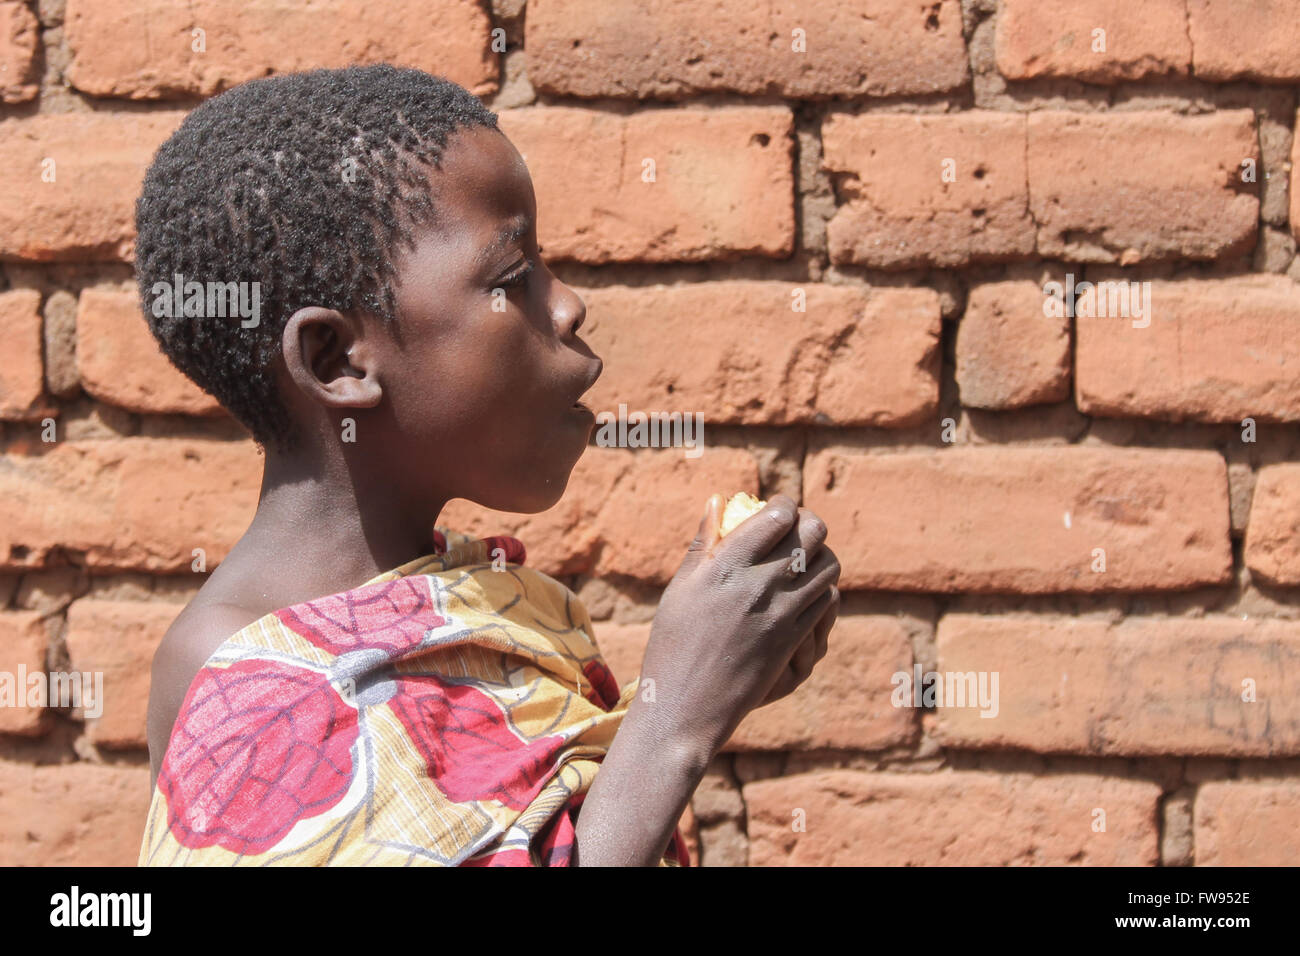 A young girls eats sugarcane. - Stock Image